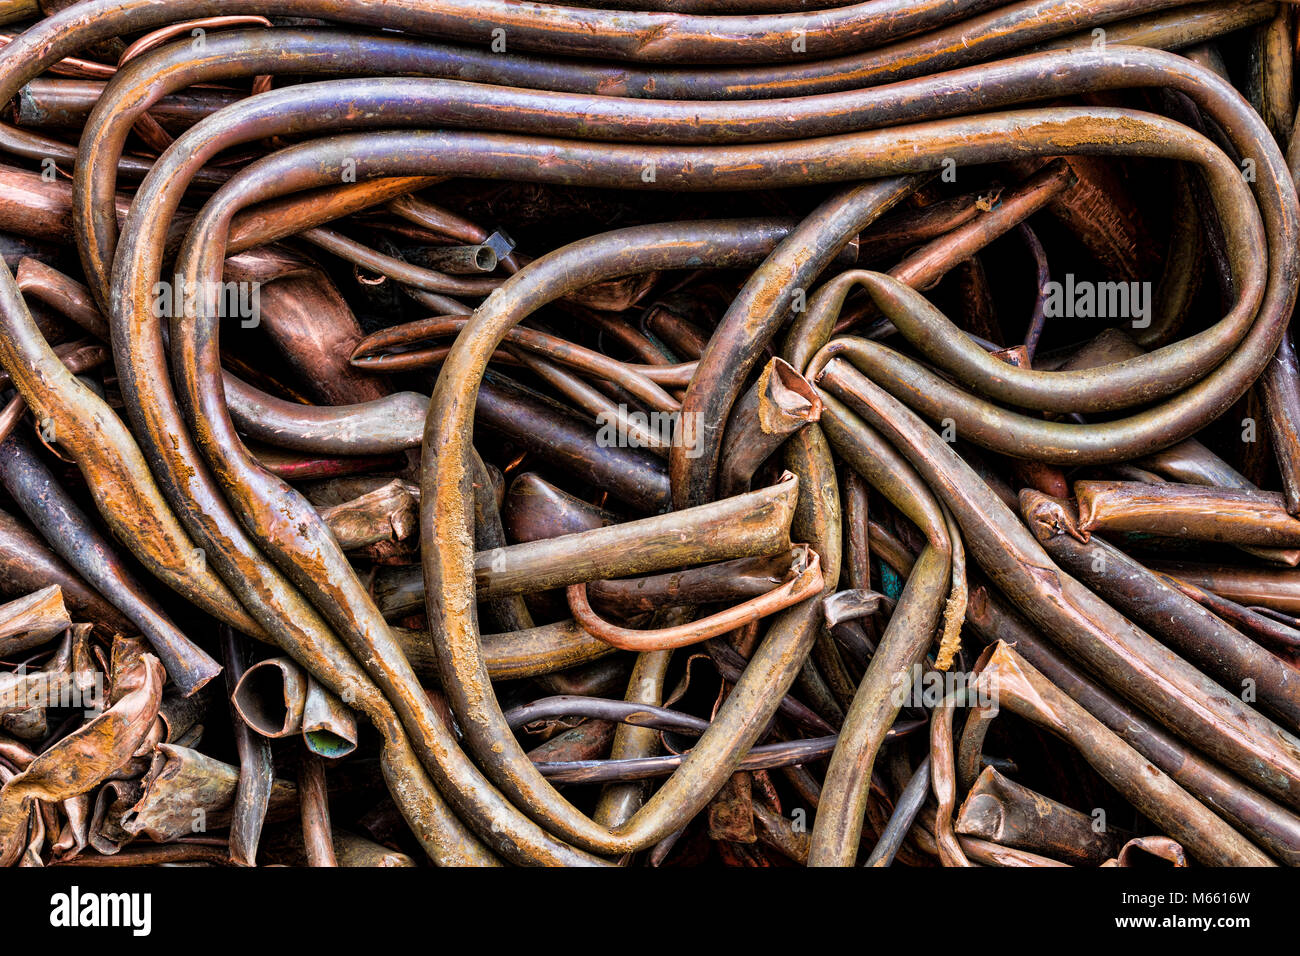 Copper Scrap Metal Stockfotos & Copper Scrap Metal Bilder - Alamy